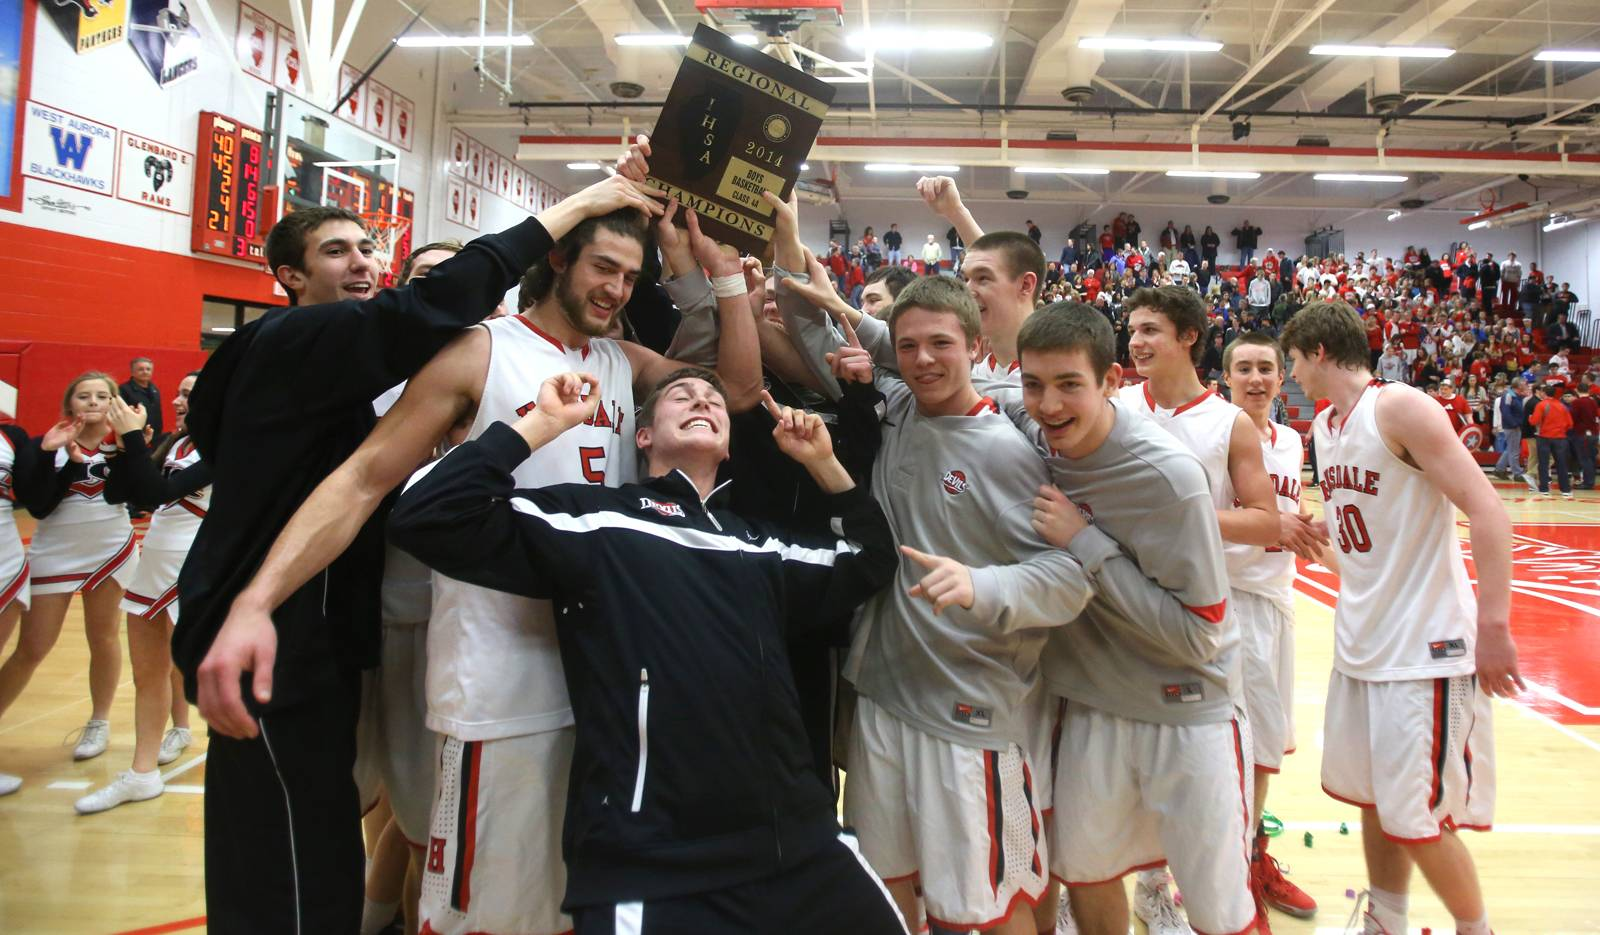 Hinsdale Central players celebrate their regional boys basketball championship win over Naperville Central.